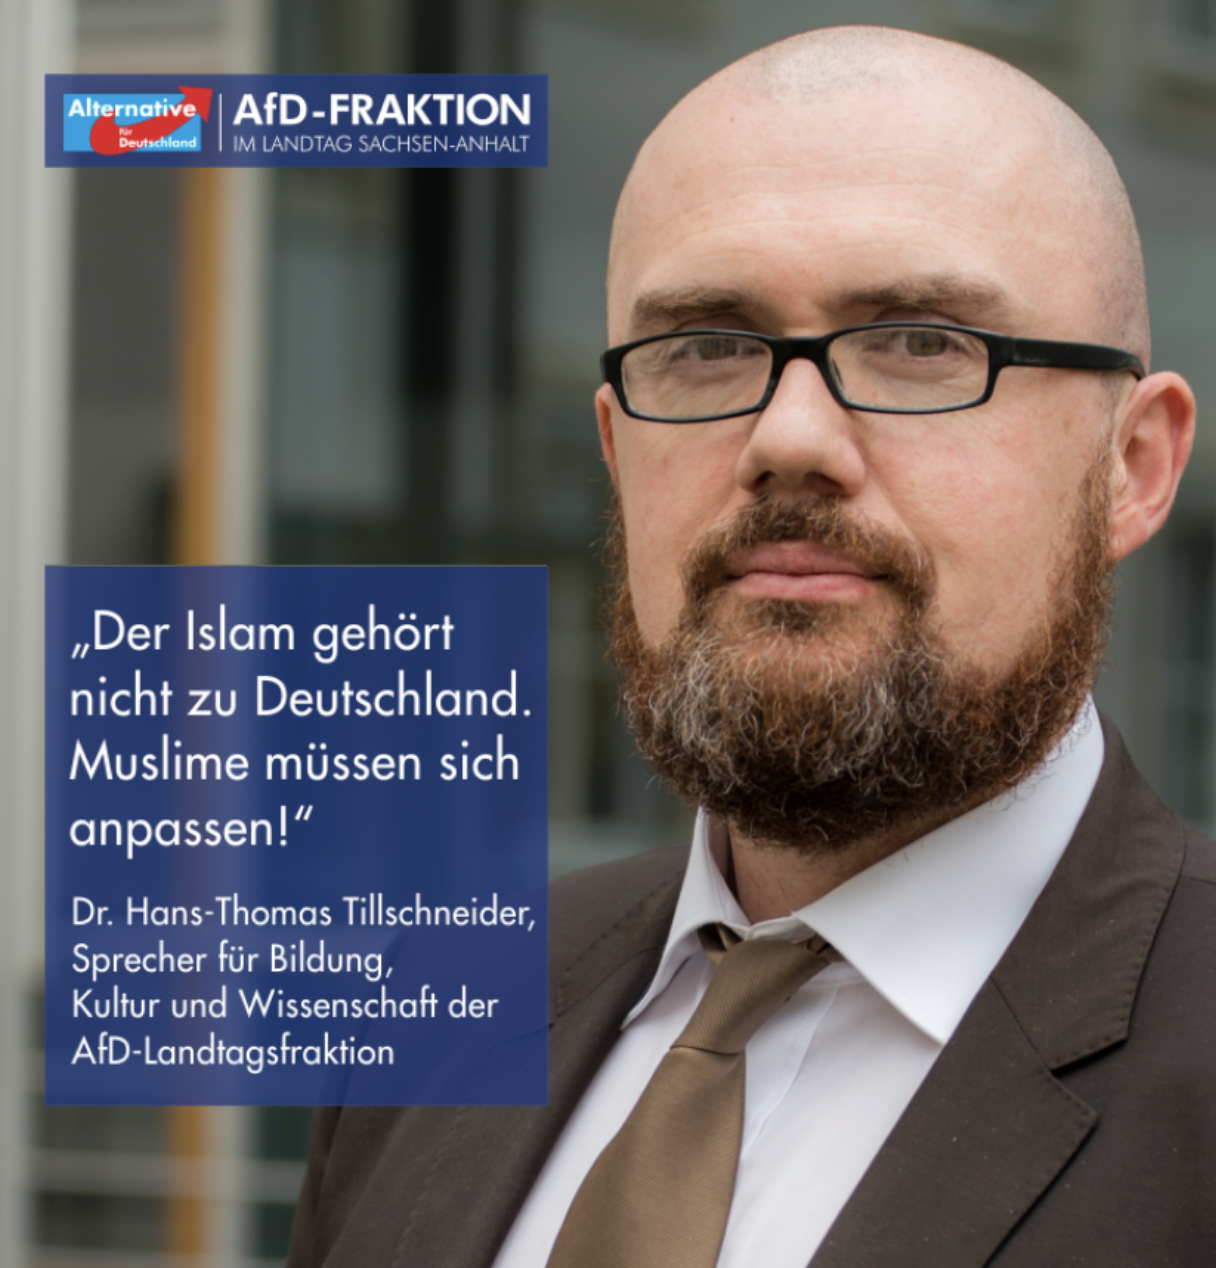 Post reads: Islam is not part of Germany. Muslims have to assimilate. From AfD Facebook